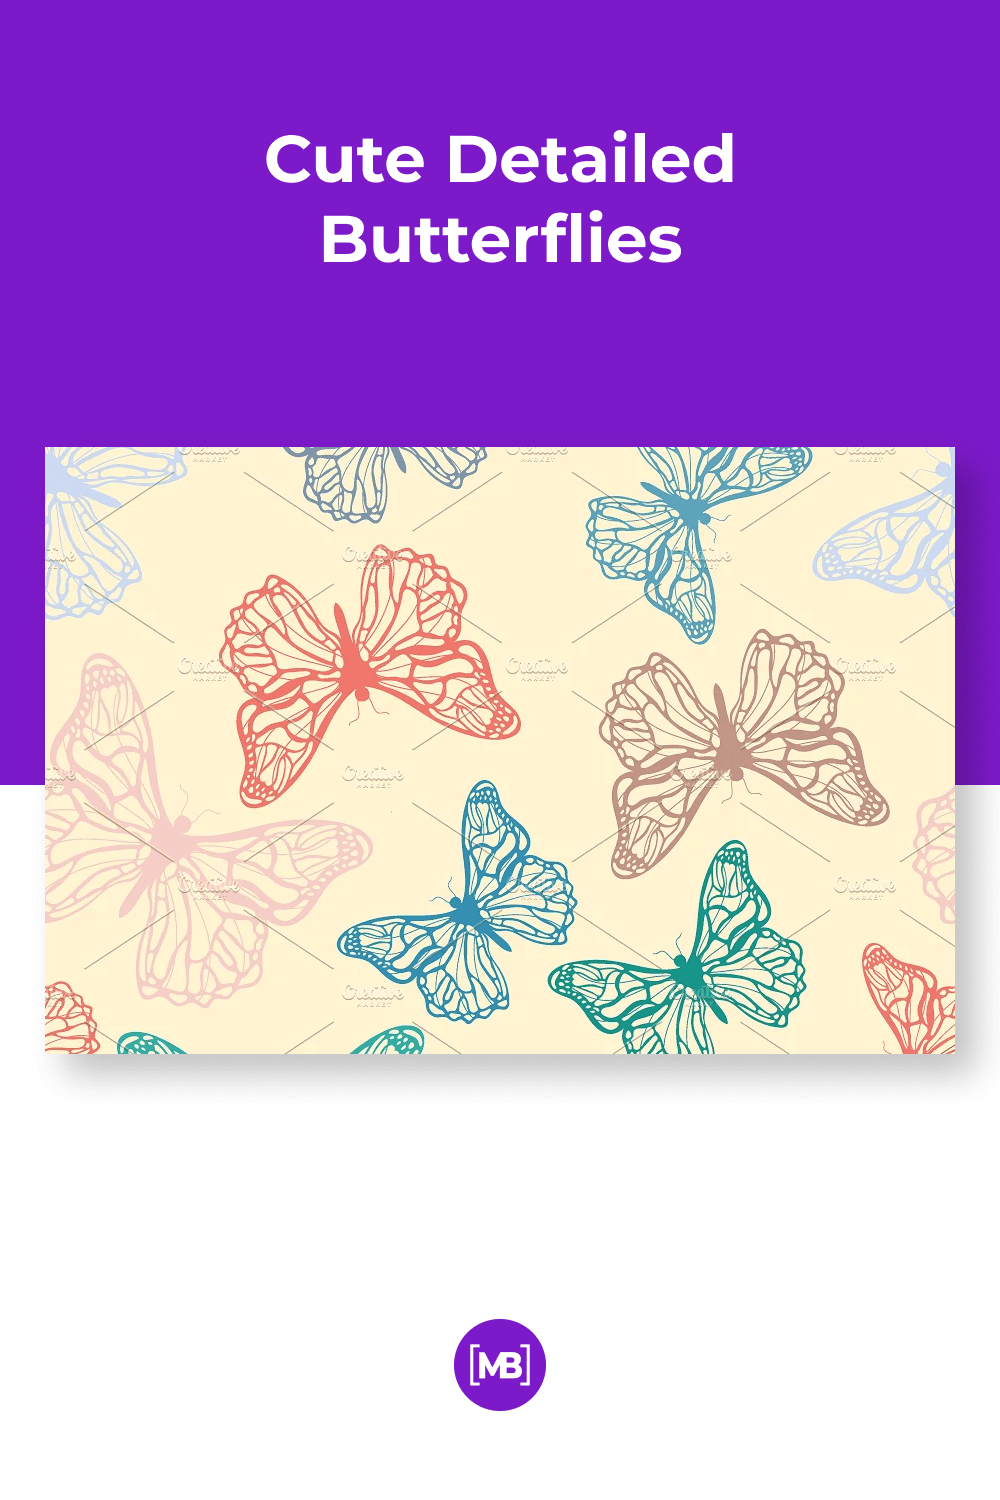 Thin and hand drawn butterflies.